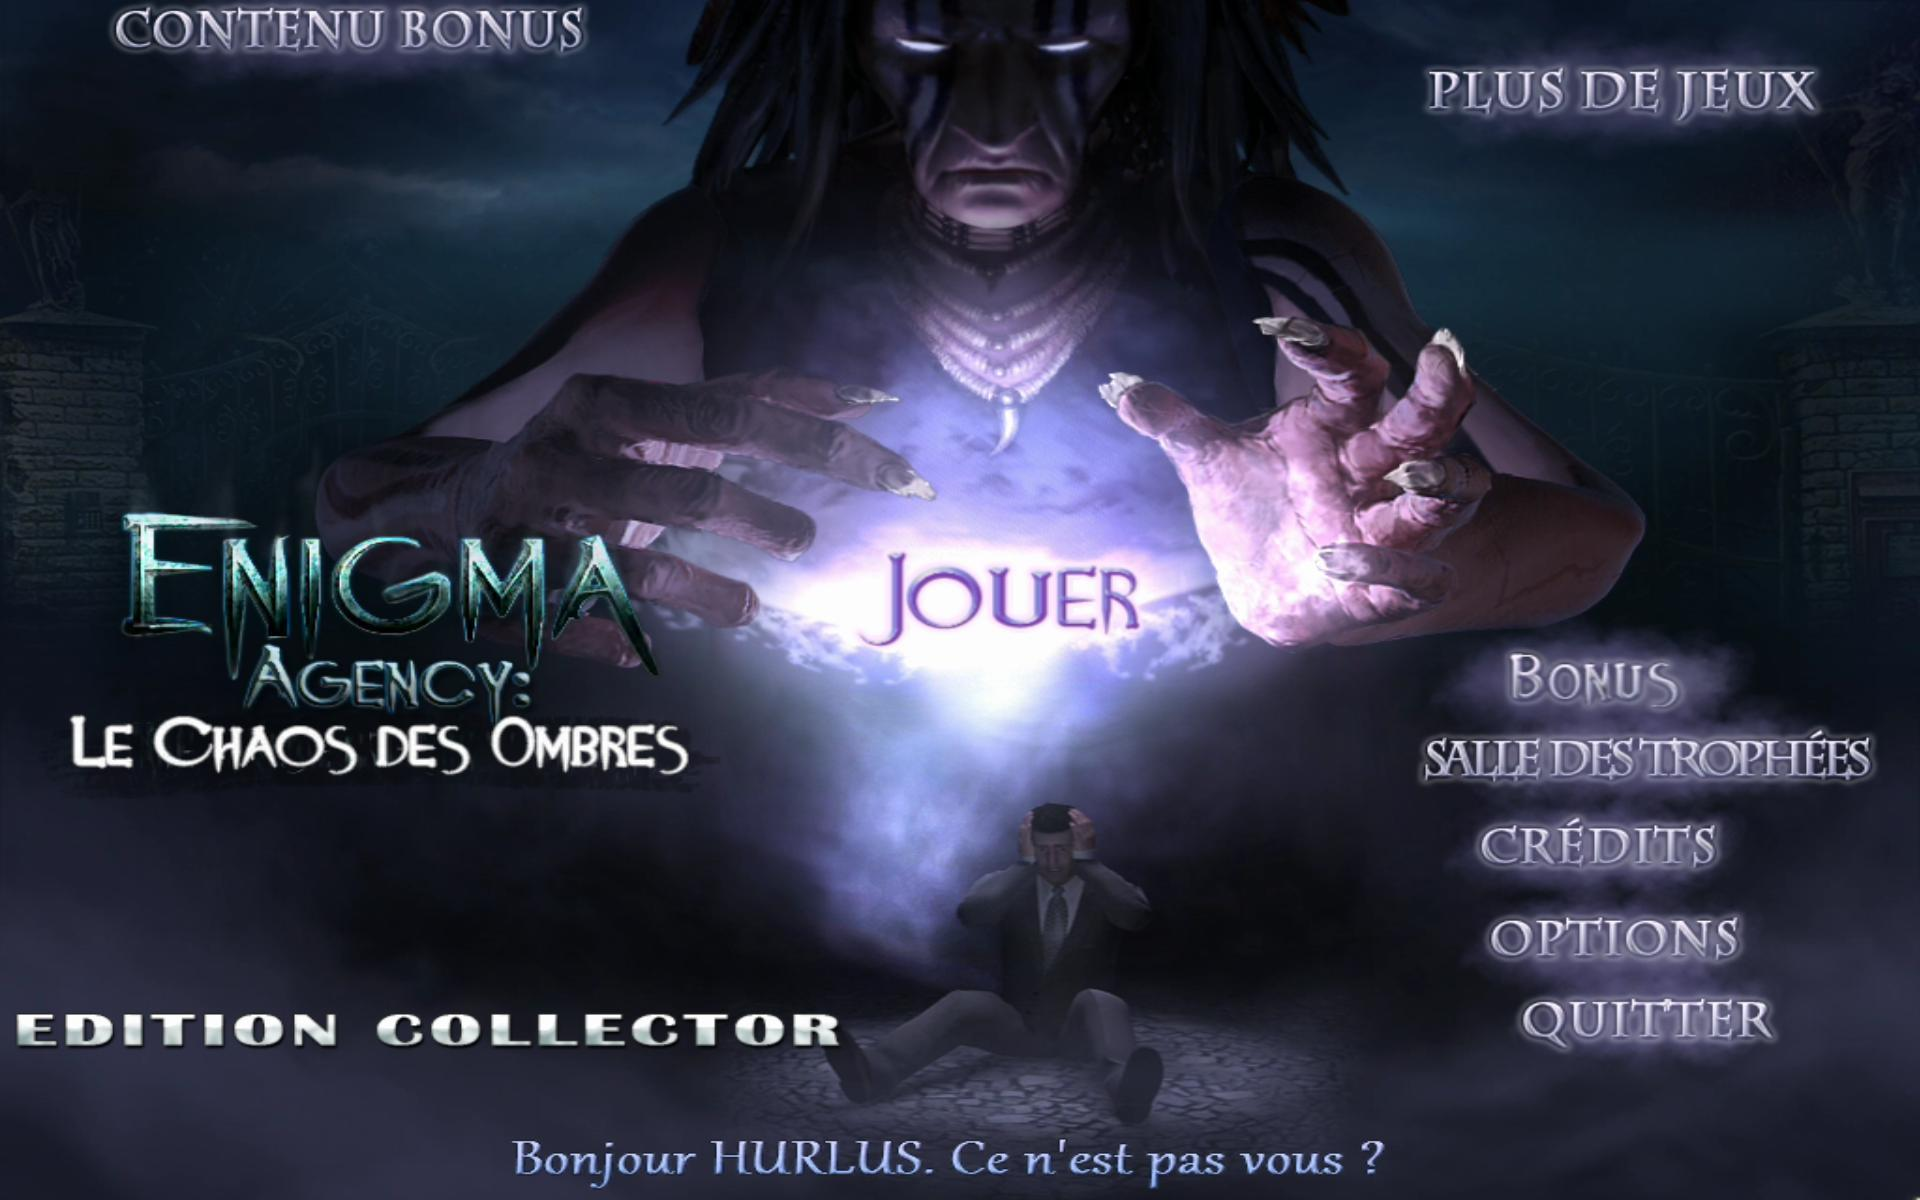 Enigma Agency: Le Chaos des Ombres Edition Collector  [PC] [MULTI]